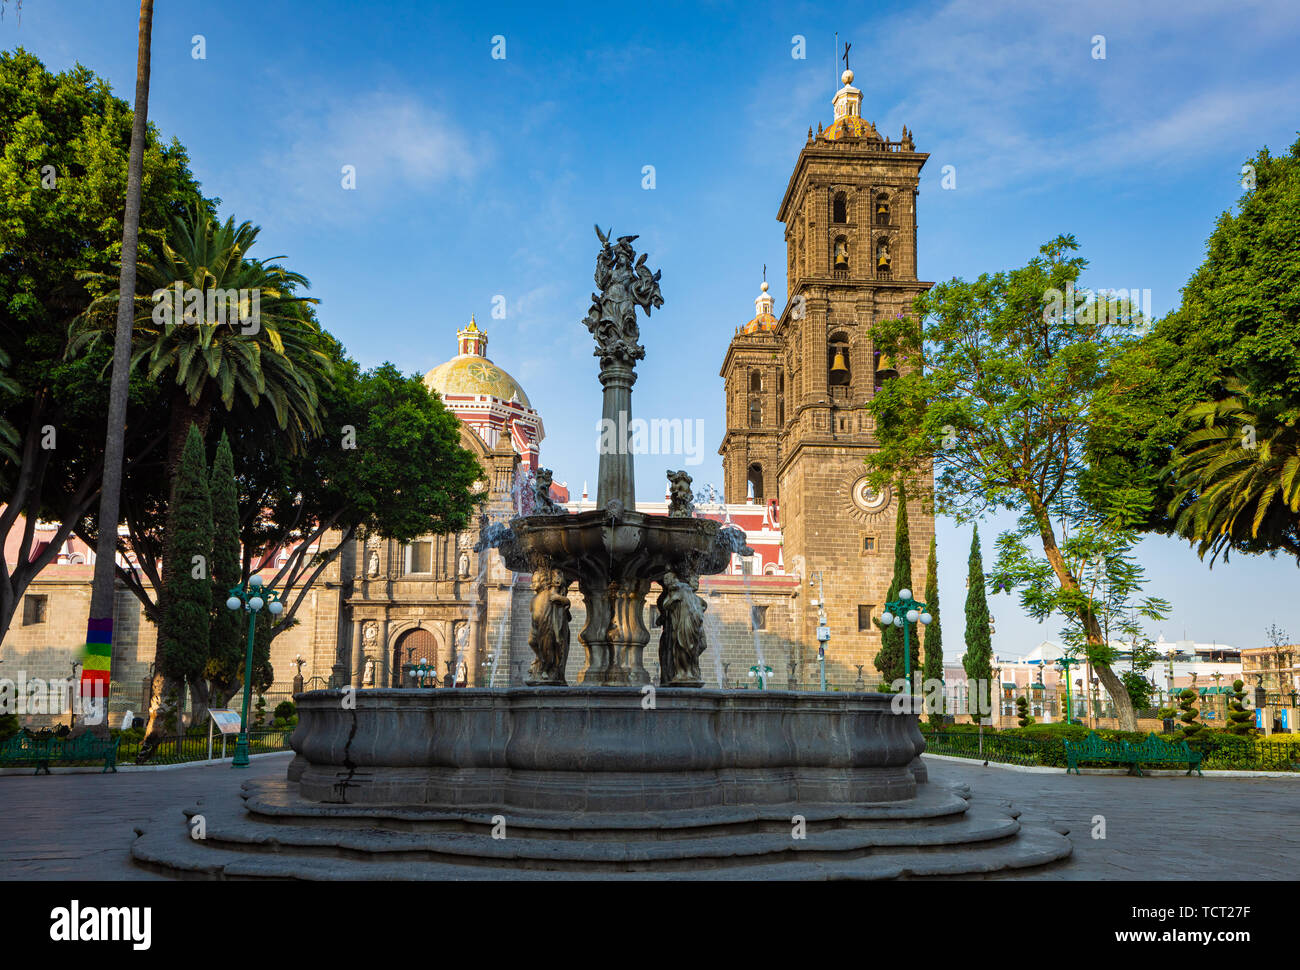 Puebla Cathedral is a Roman Catholic church in the city of Puebla, in the state of Puebla, Mexico. It is a colonial cathedral, and is the seat of the  - Stock Image